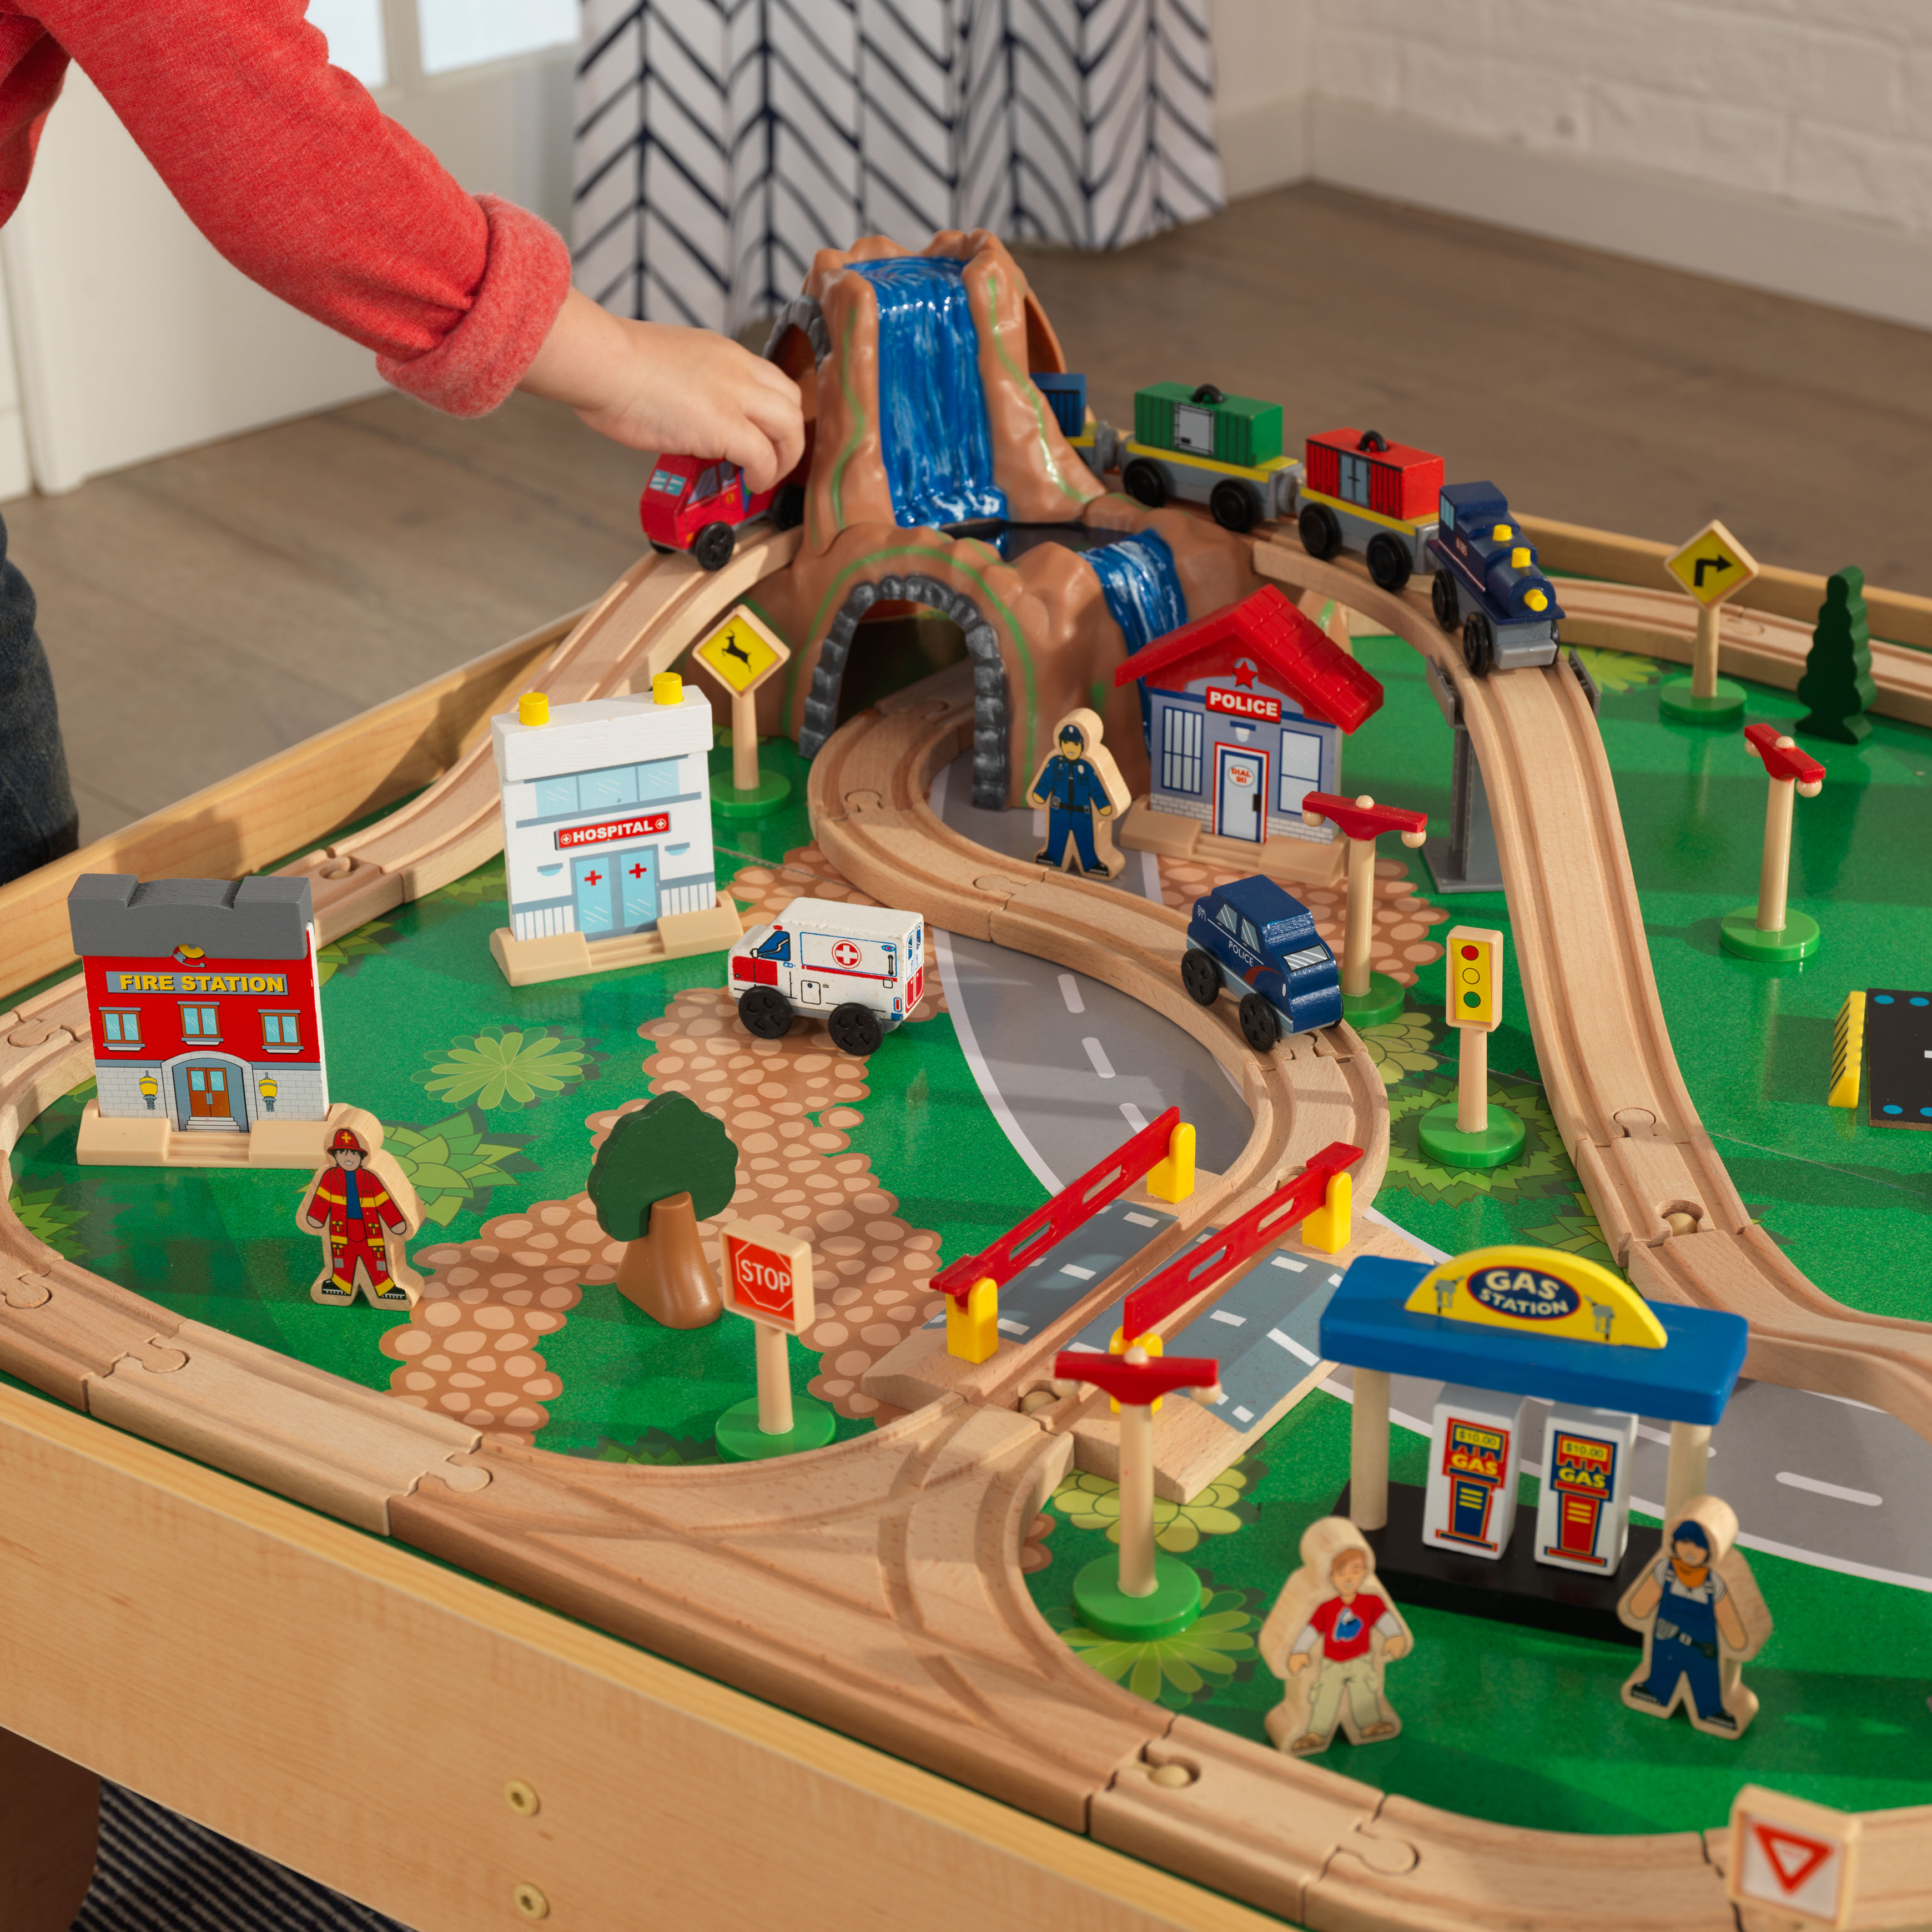 KidKraft Waterfall Mountain Train Set U0026 Table With 120 Accessories Included  Image 9 Of 11